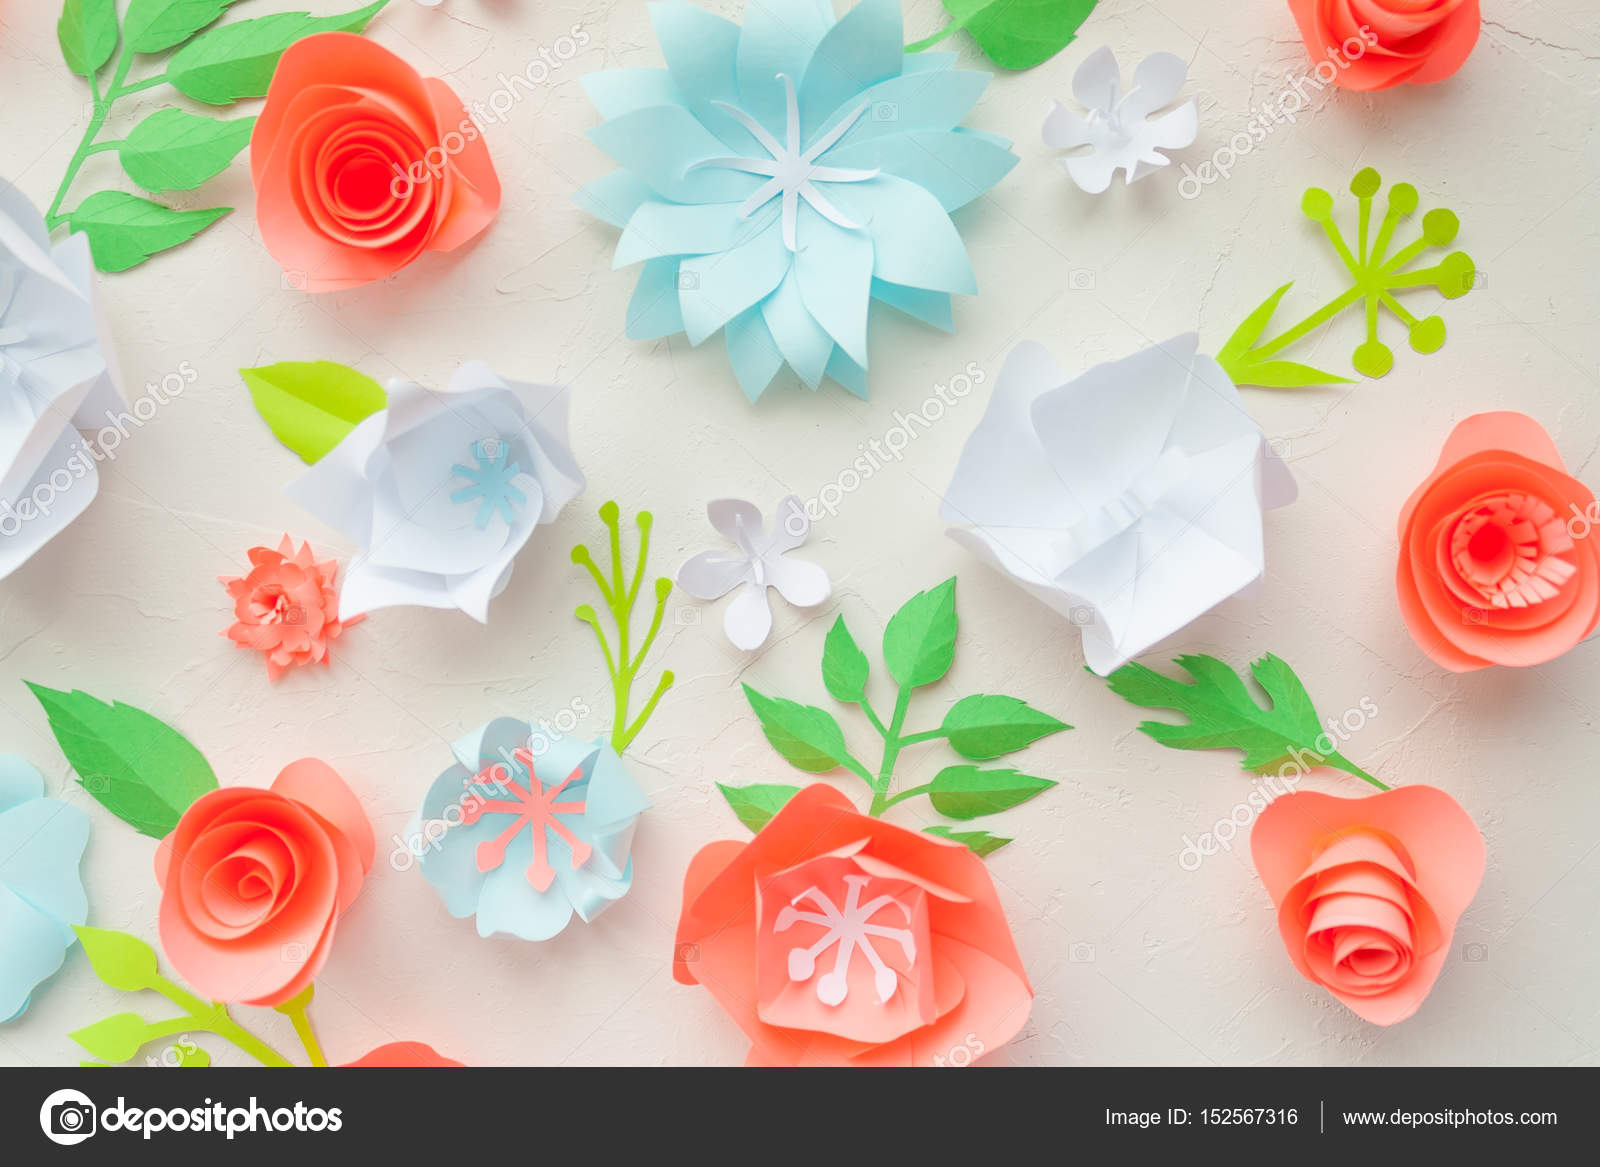 Color paper flowers on the white stucco flat lay nature concept color paper flowers on the white stucco flat lay nature concept stock photo mightylinksfo